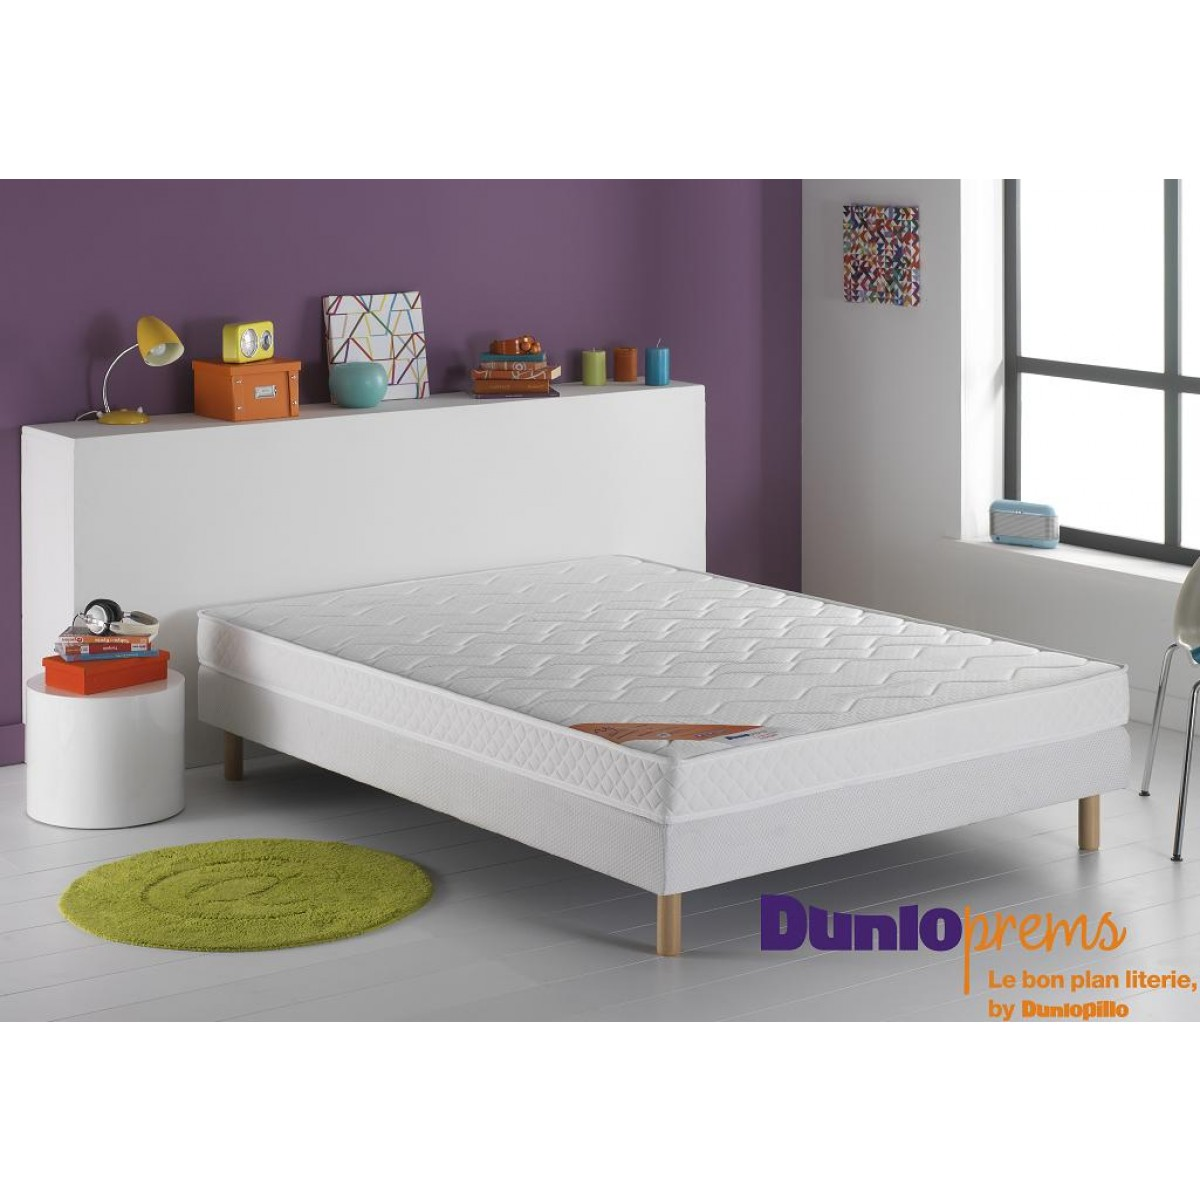 dunlopillo cmatelas dunloprems up 160x200. Black Bedroom Furniture Sets. Home Design Ideas